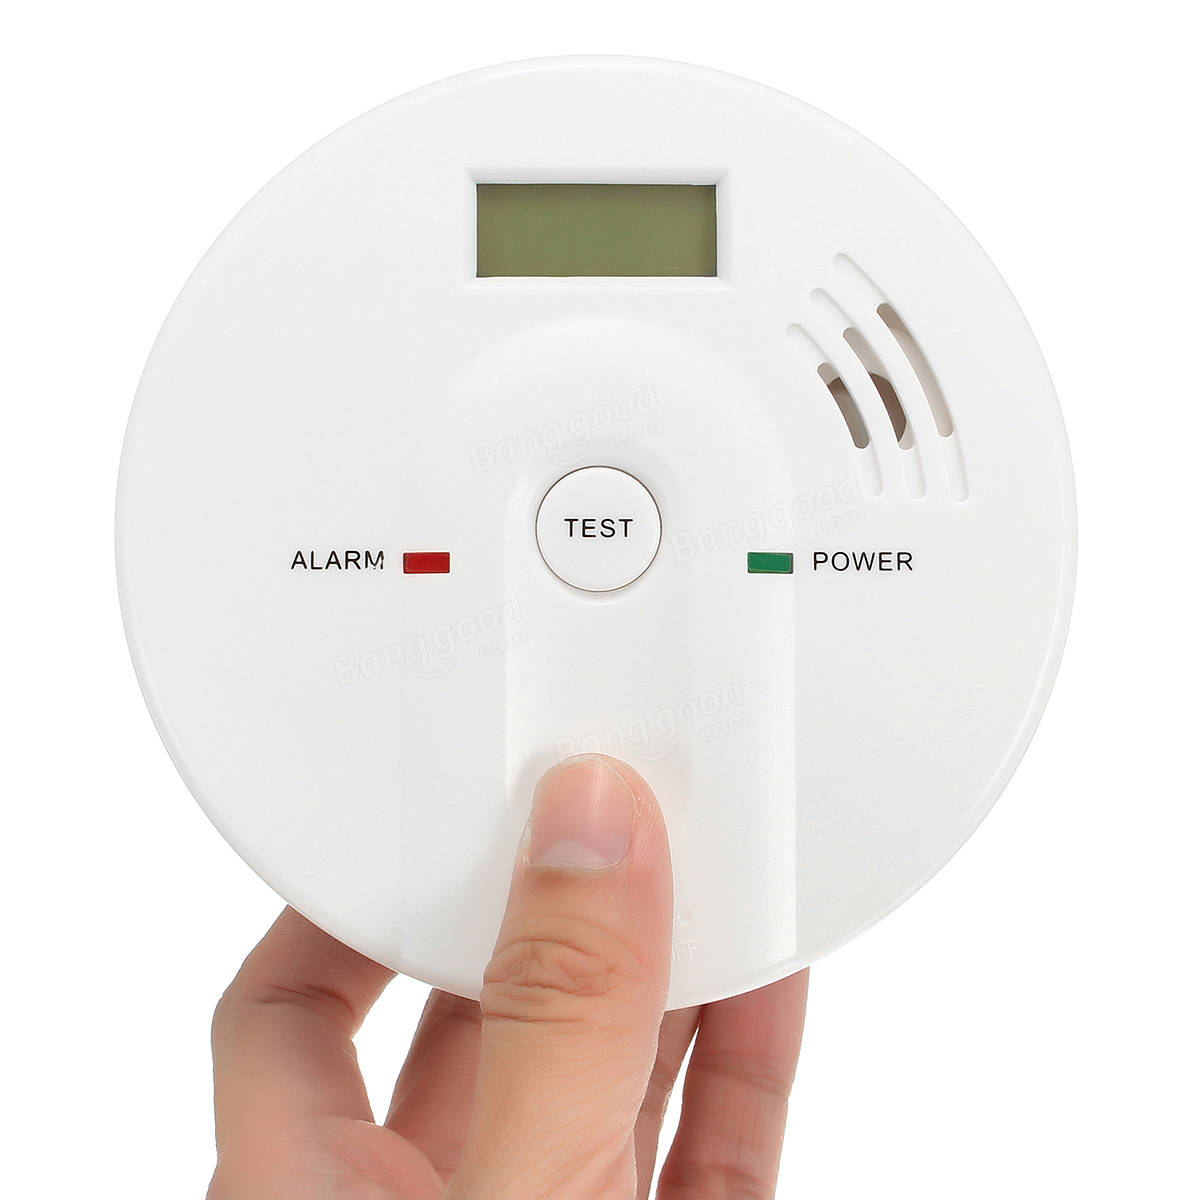 HQ Smoke Fire Alarm Sensor Detector Security System for Home Kitchen Bedroom